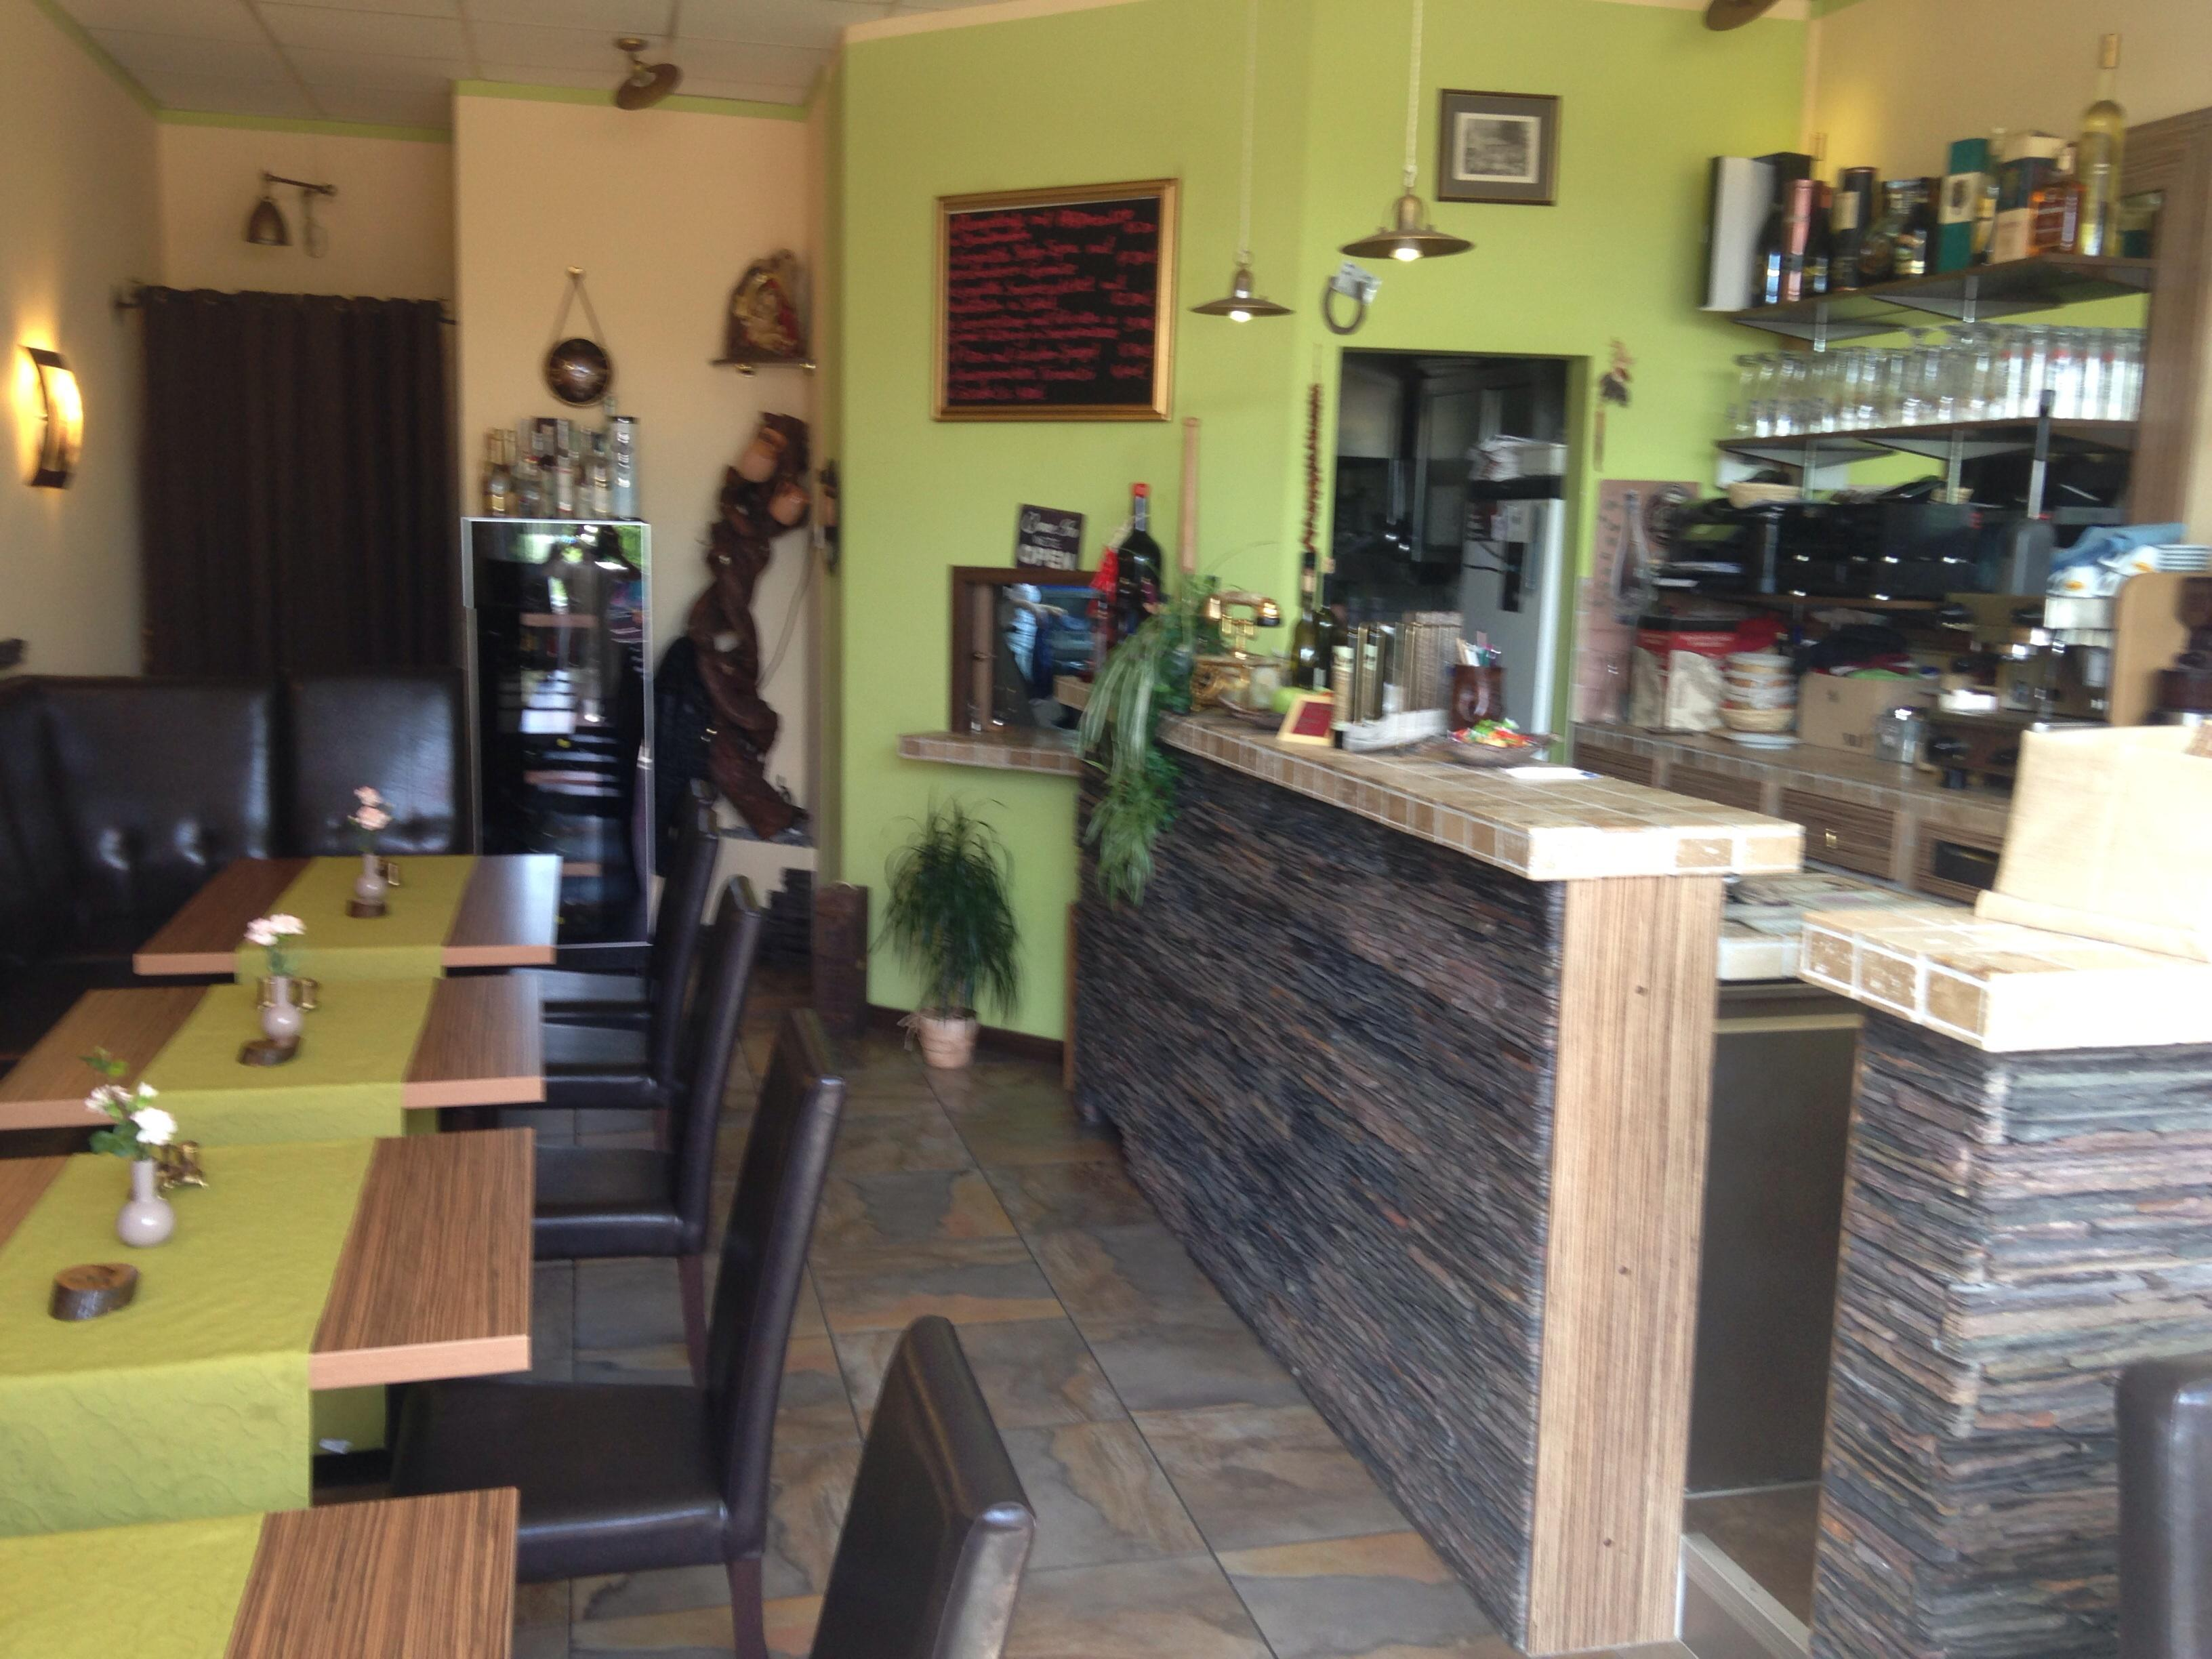 Things To Do in Hungarian, Restaurants in Hungarian